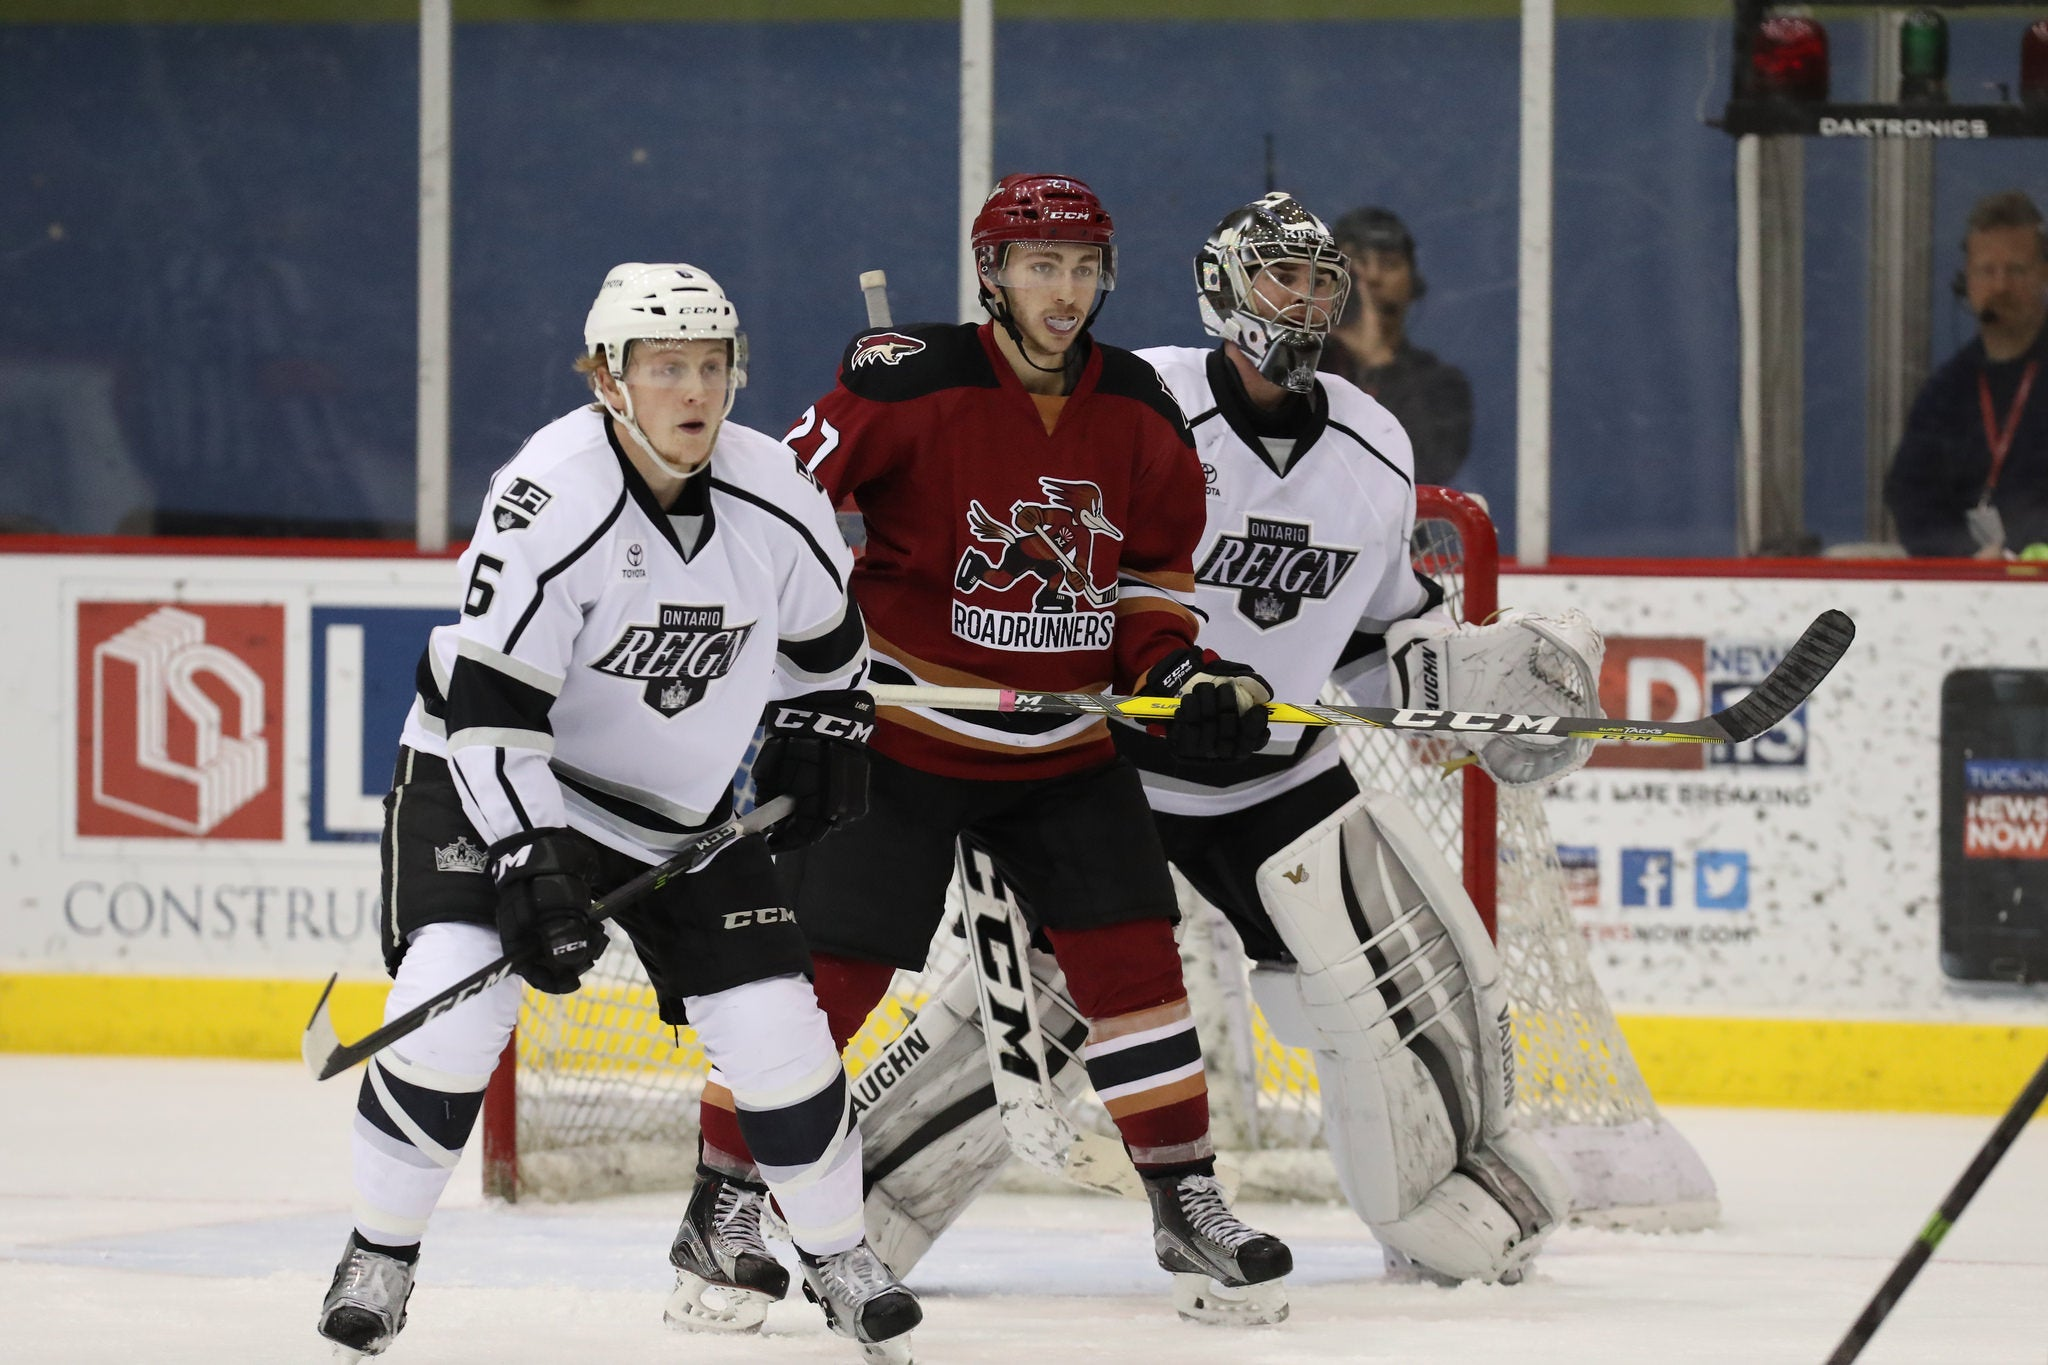 Reign Host Roadrunners on Kings Affiliation Night Tonight